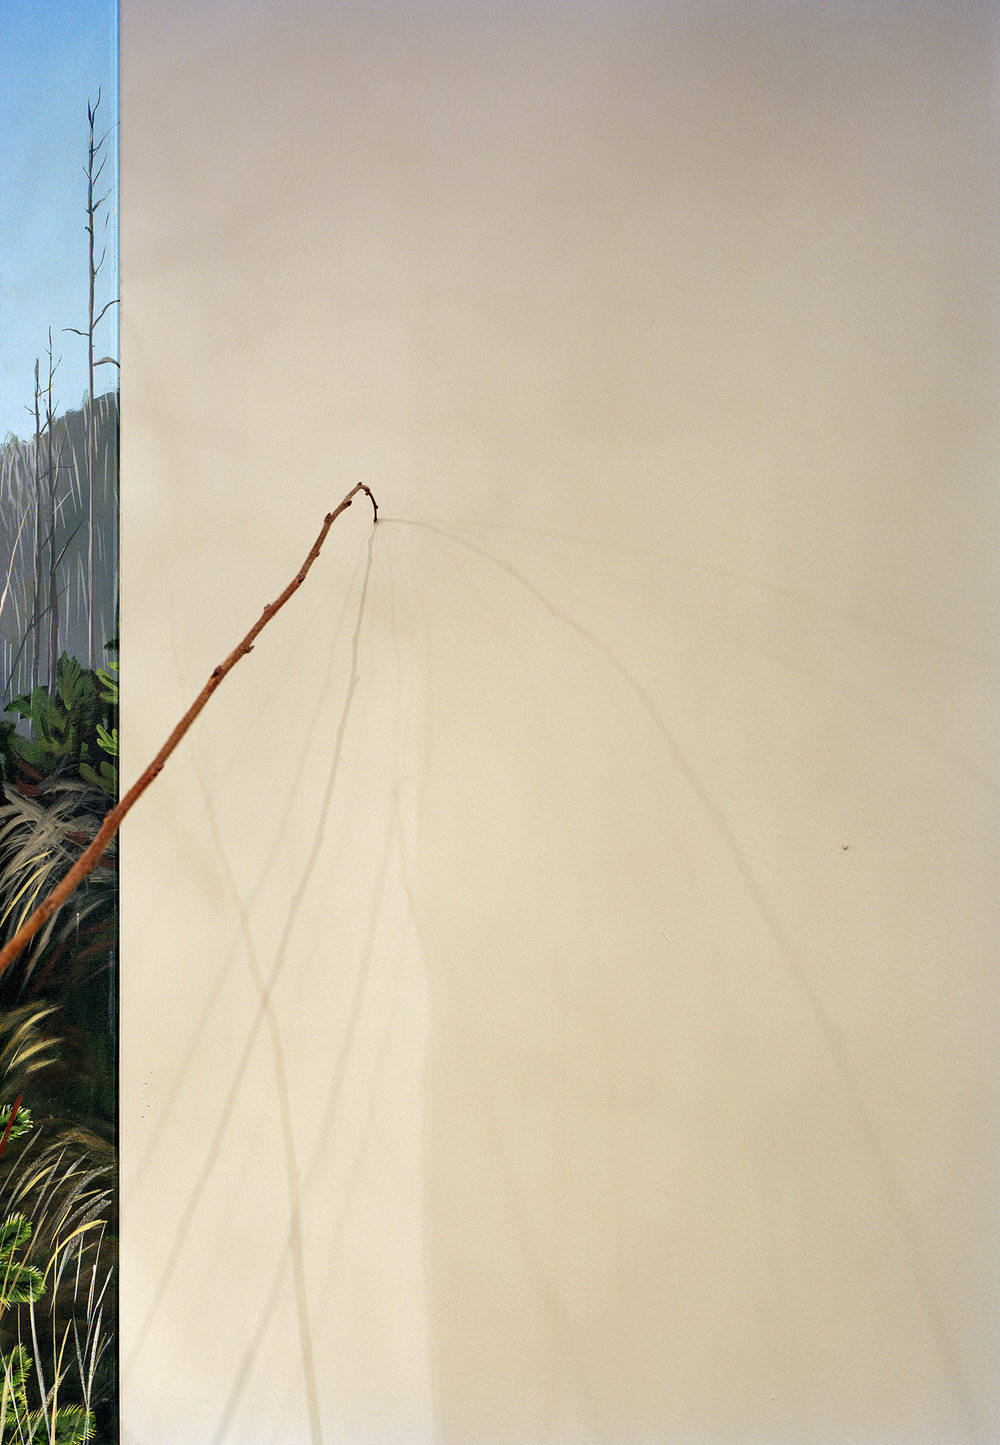 Stray , 2010 Archival pigment print 40 x 28 inches   ————